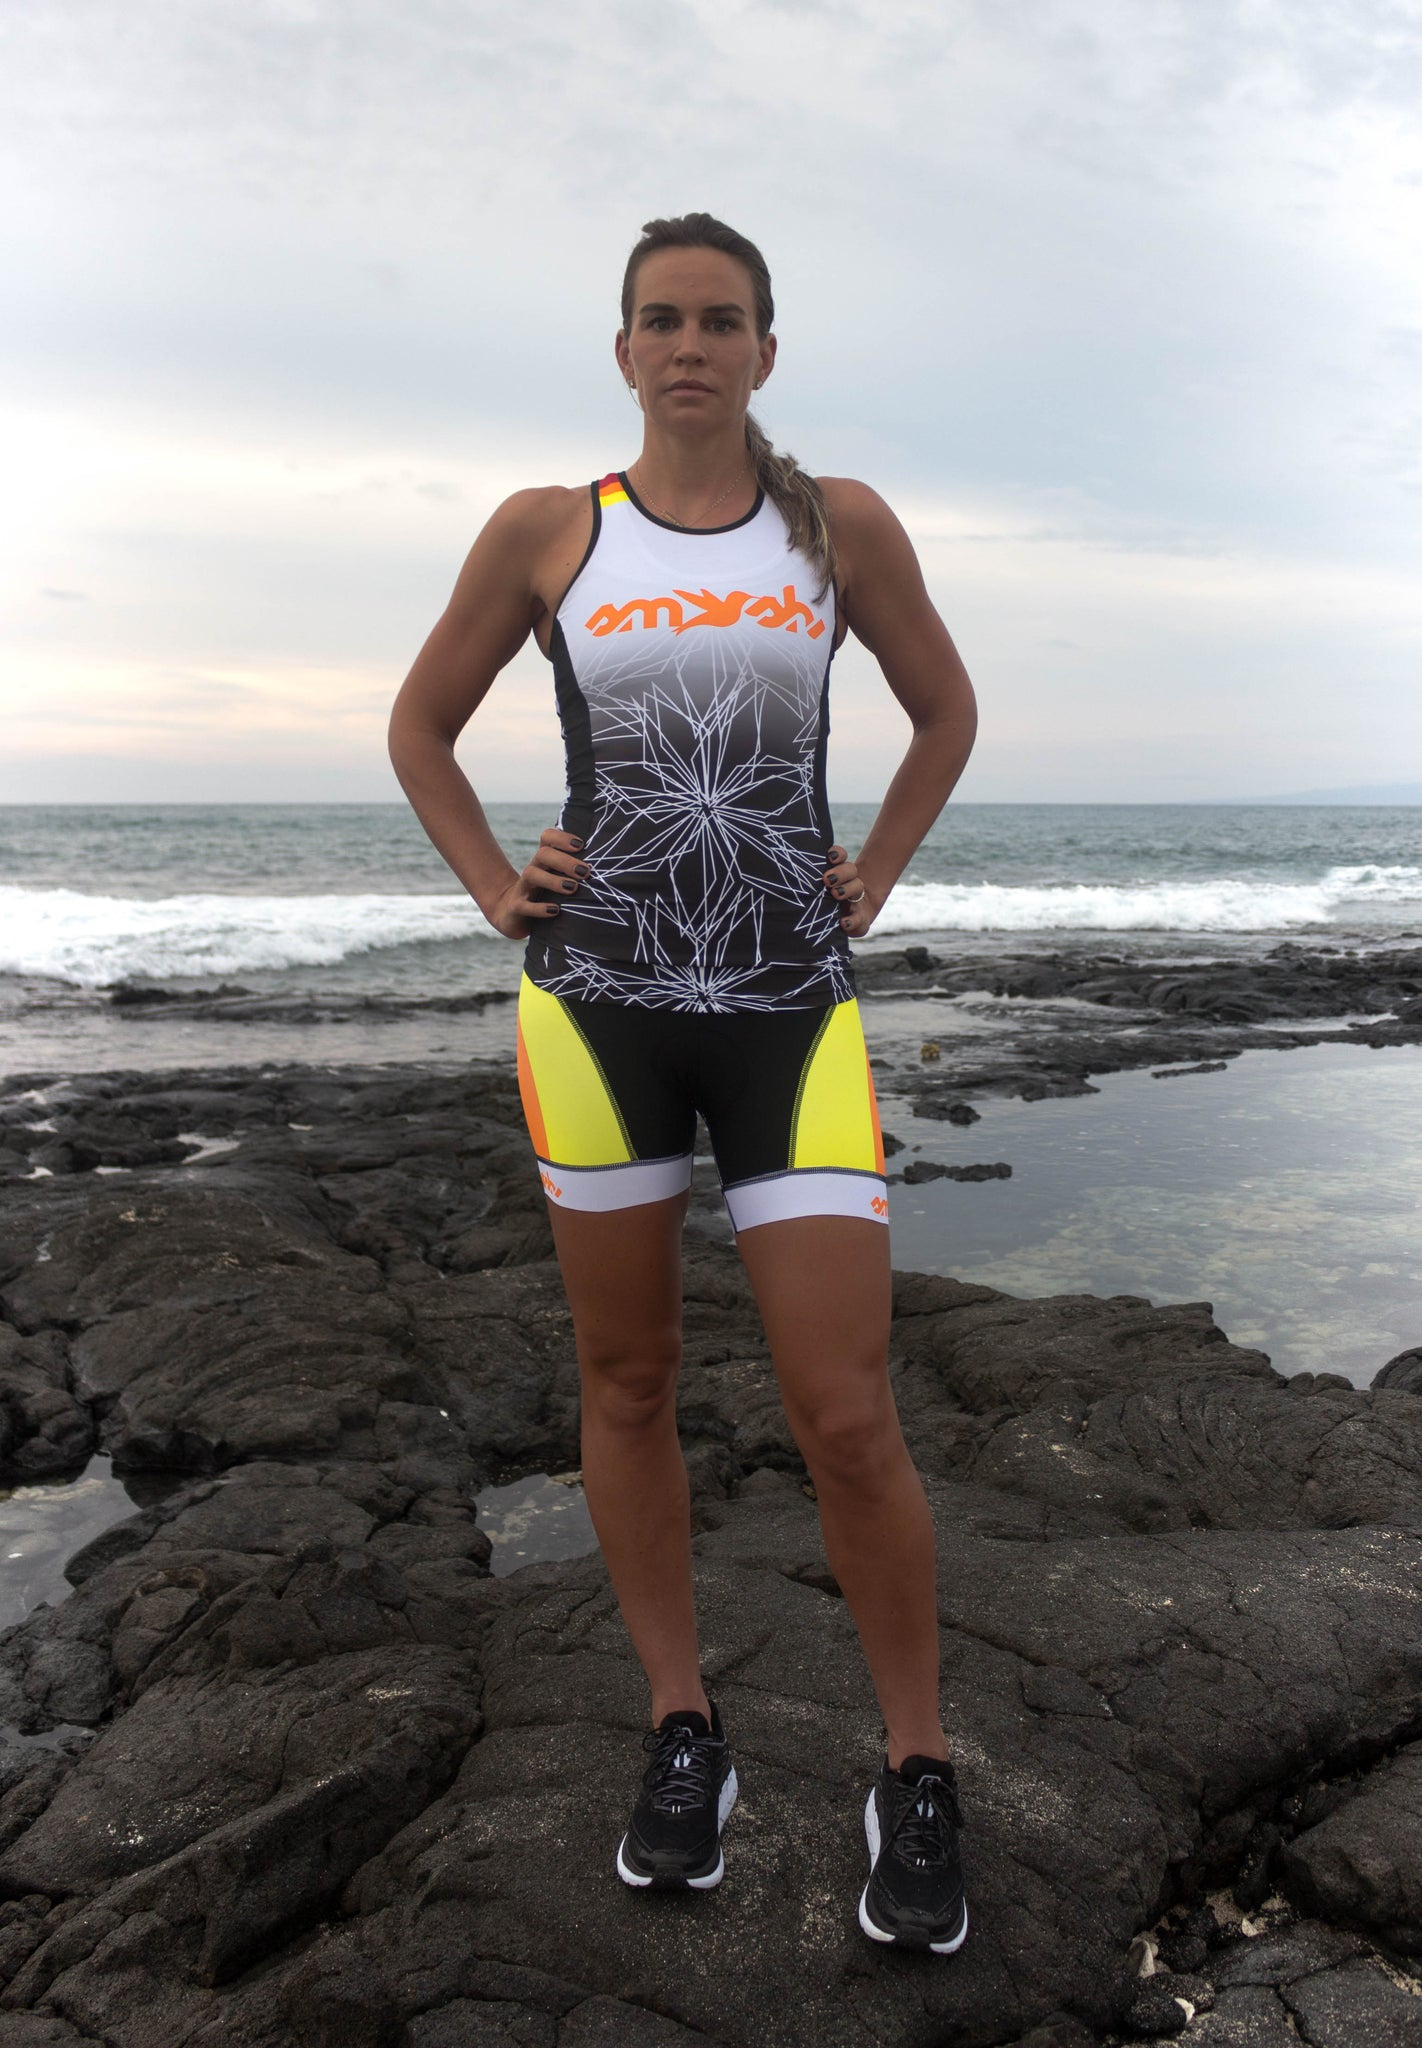 Dig Me Women's Tri Top with Built-in Bra